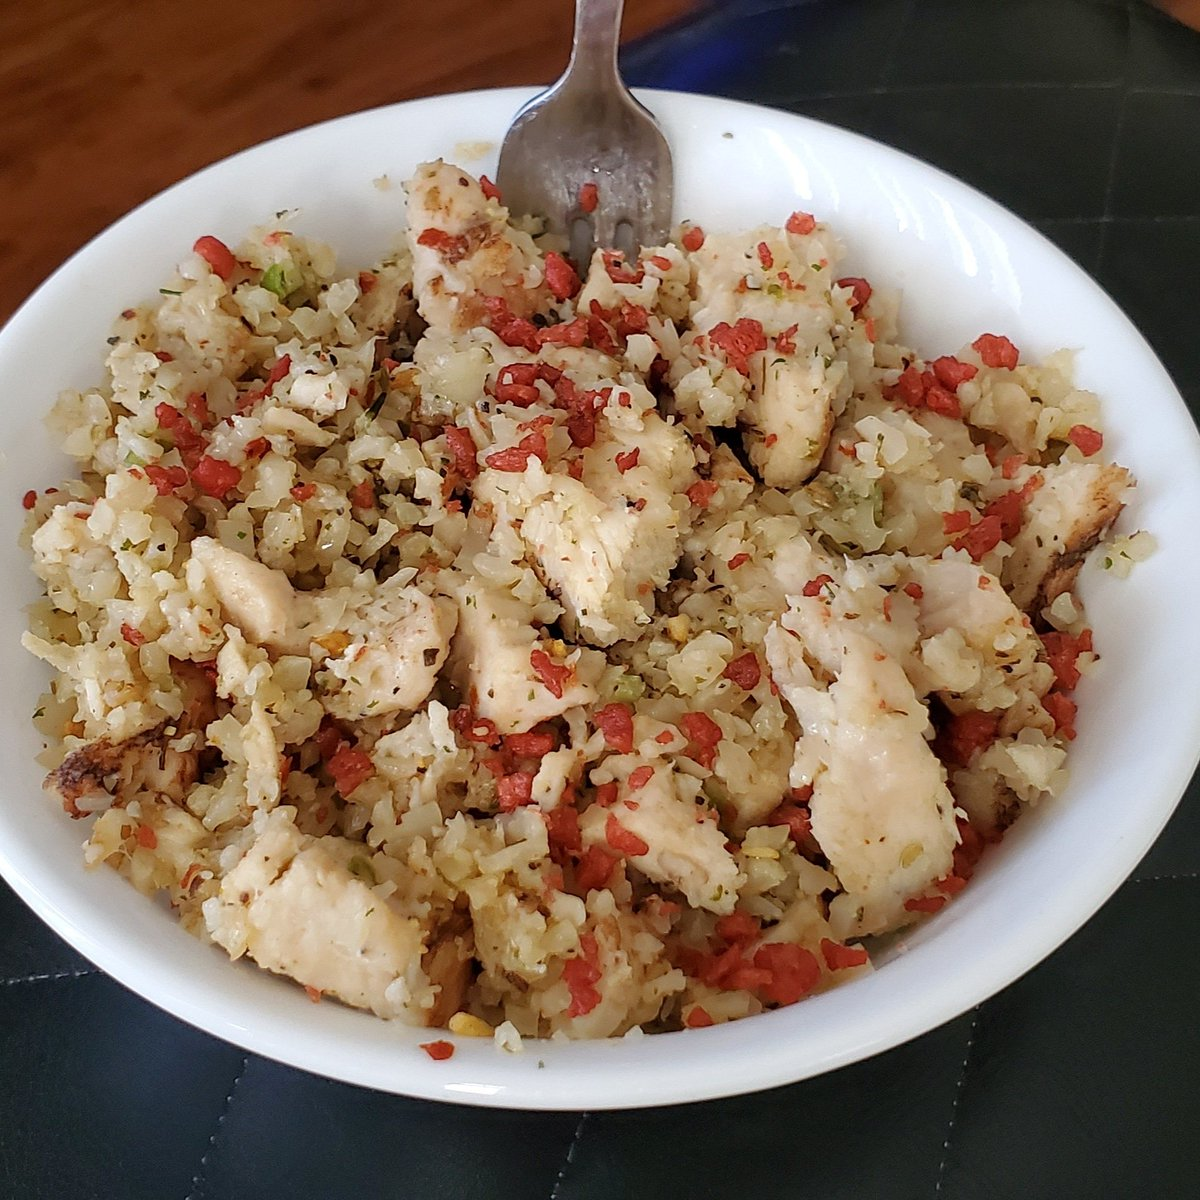 Grilled Chicken w/Riced Cauliflower and Bacon Bits...  #NomNom #Keto #Itswhatsforlunch🍴 https://t.co/Y5jPOy74Zx